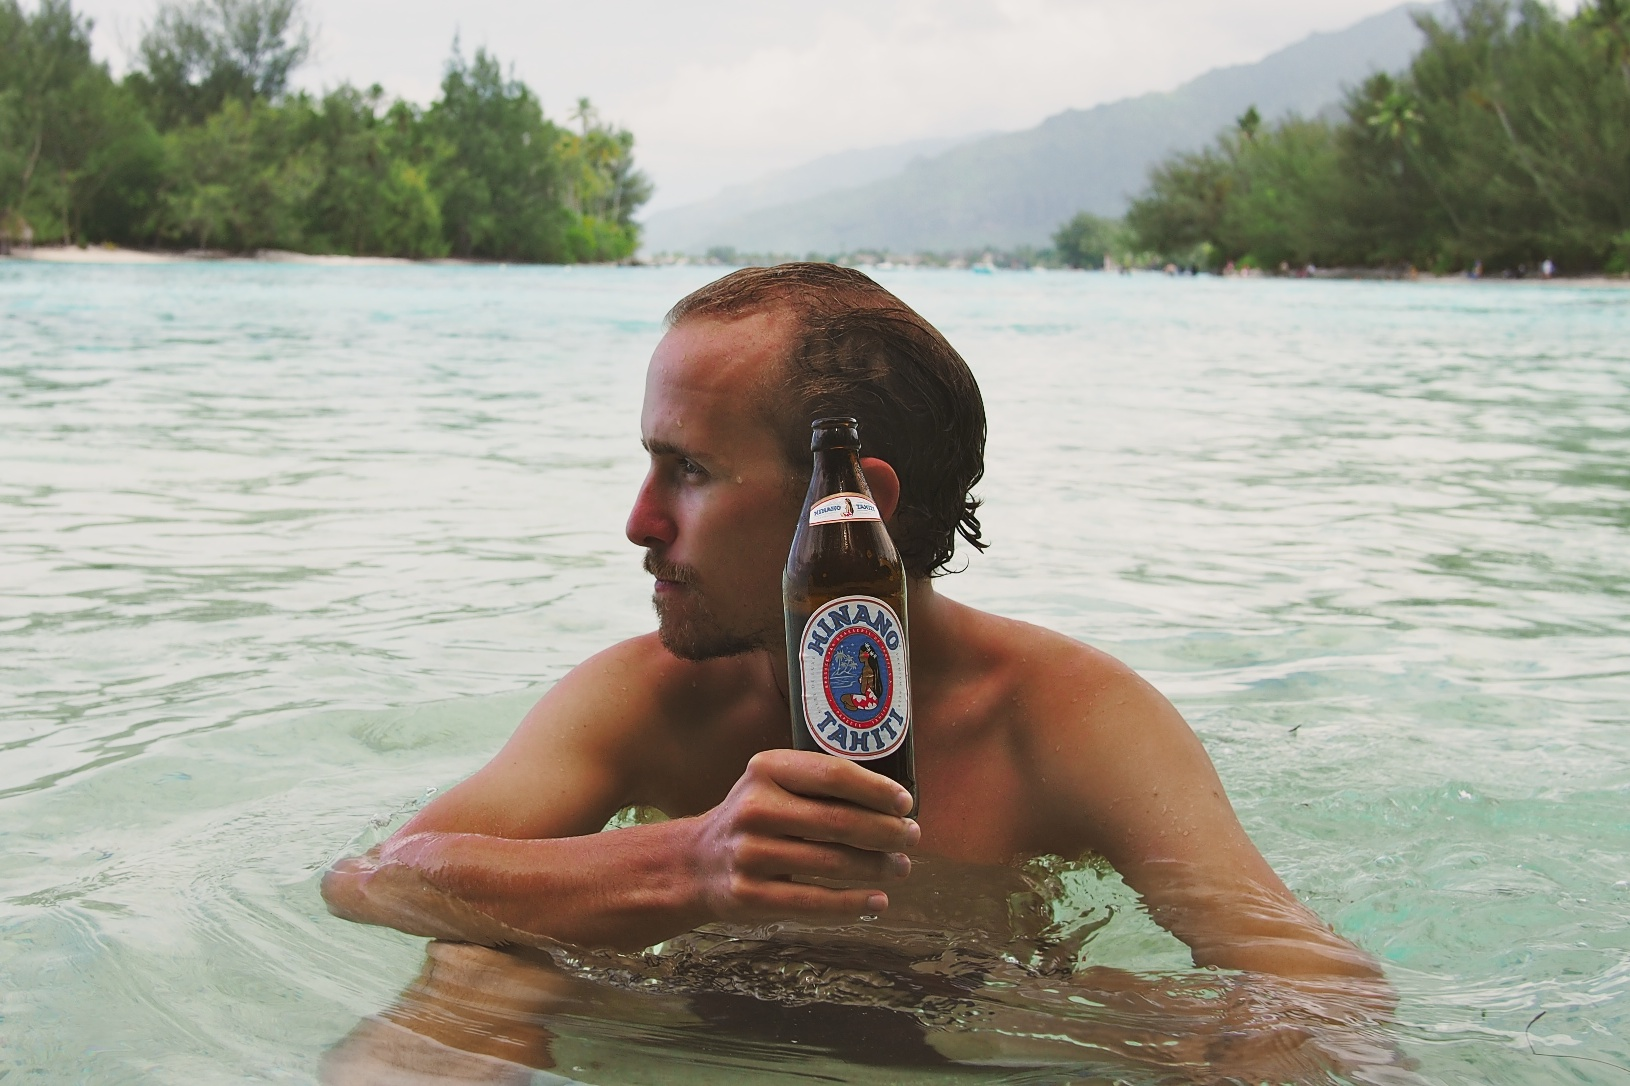 I promise, this is not an ad for Hinano beer